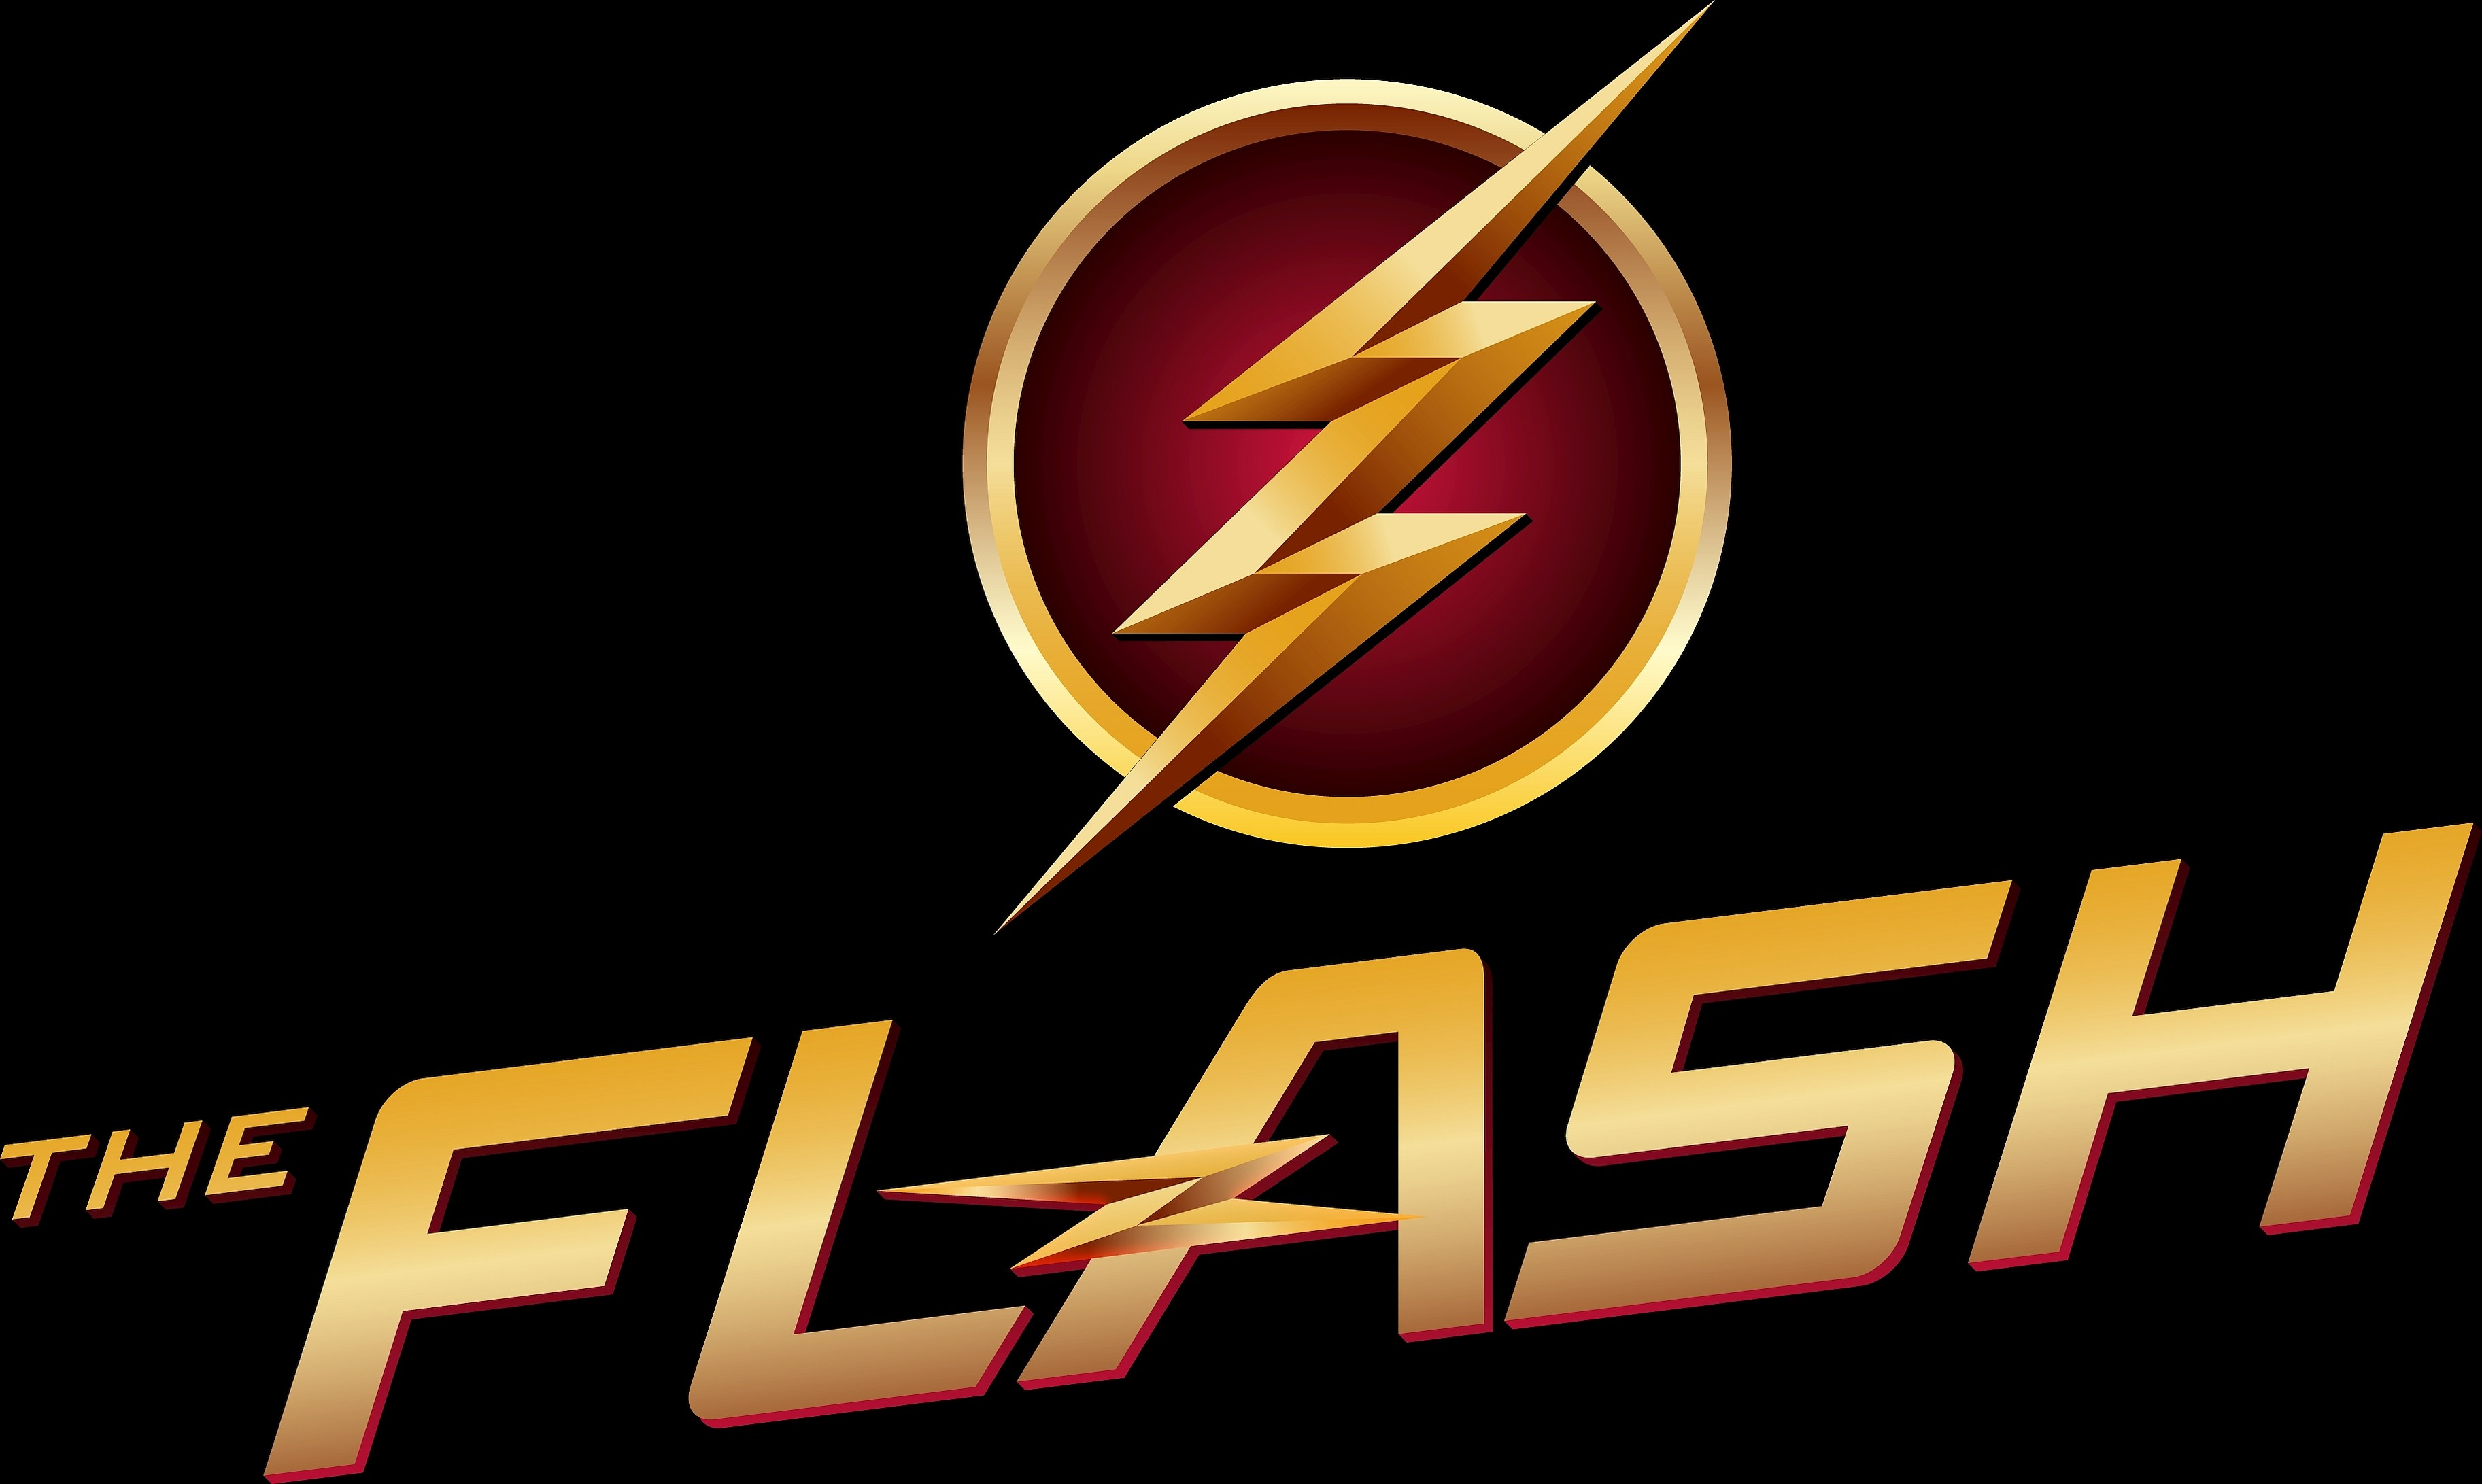 the flash logo 4k hd tv shows 4k wallpapers images